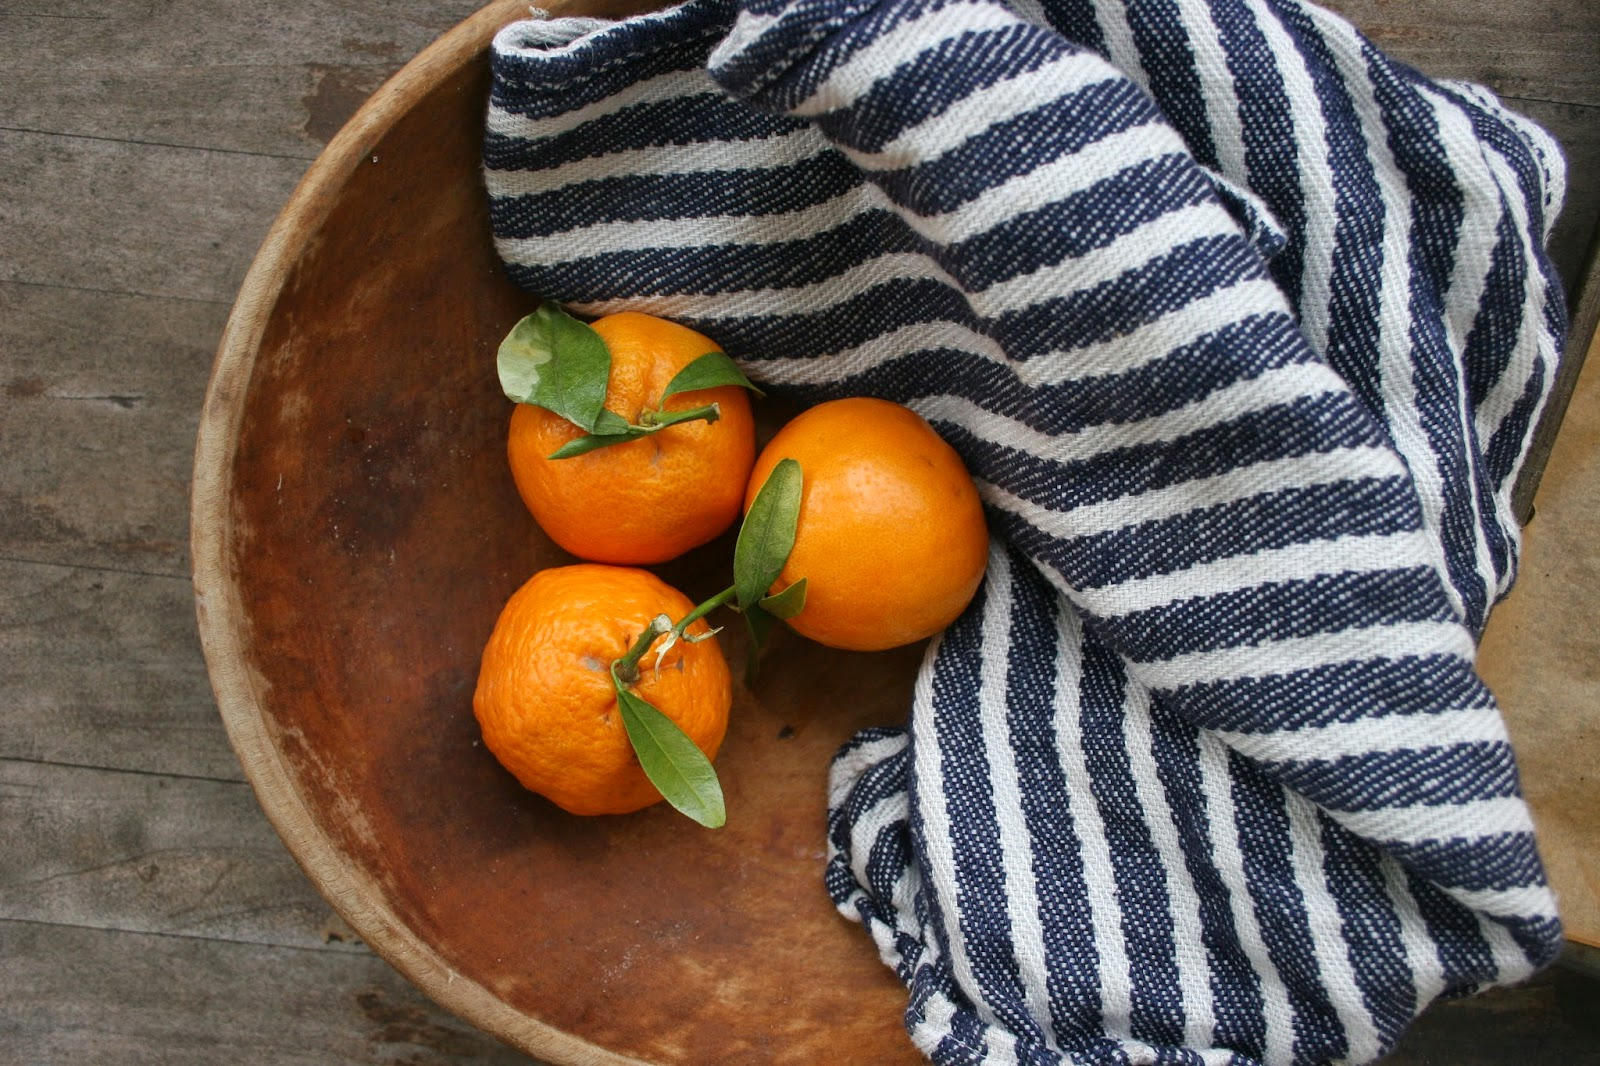 Satsuma Oranges in wooden bowl